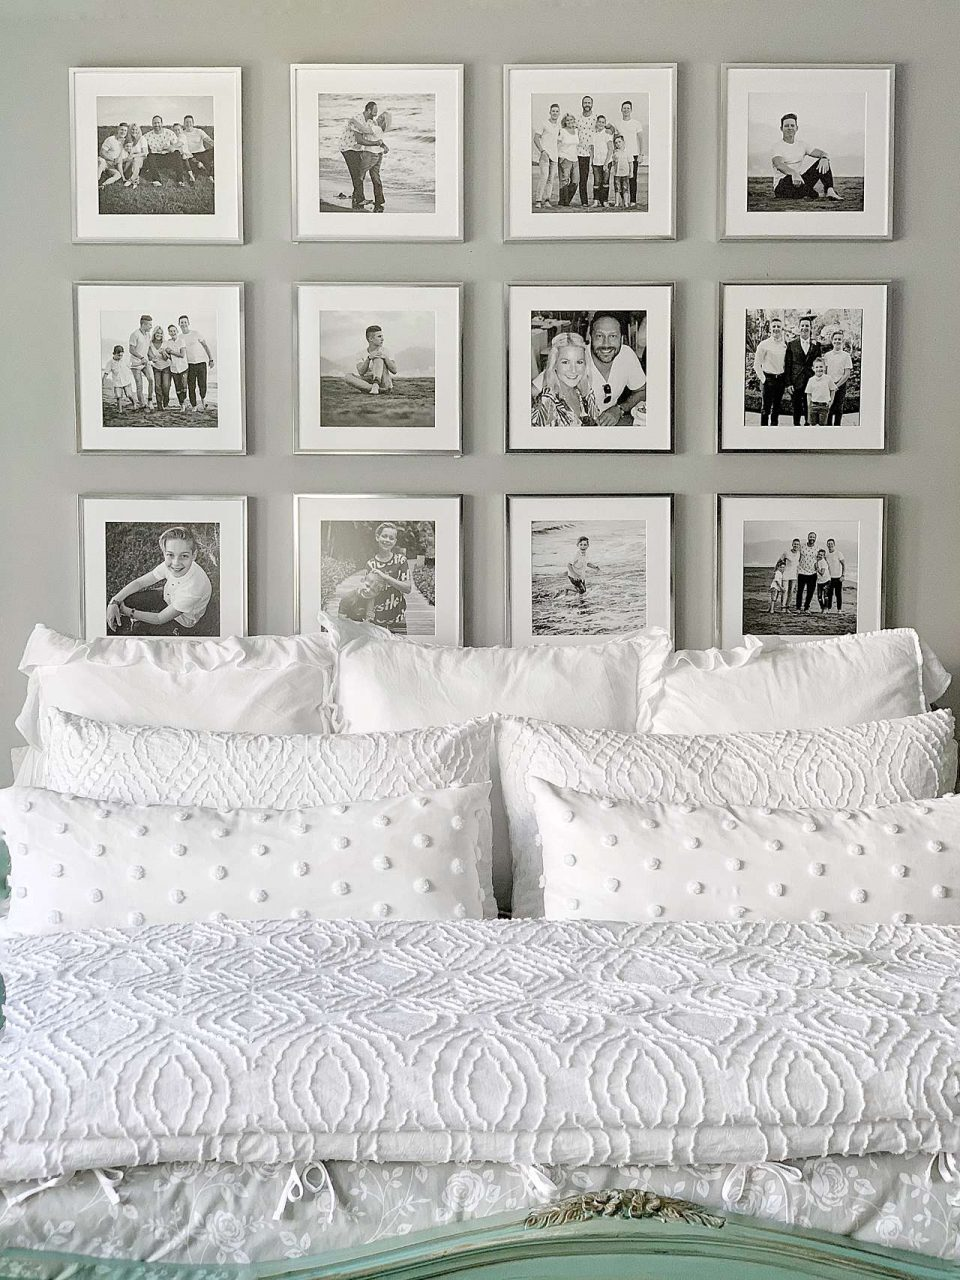 4x3 gallery wall